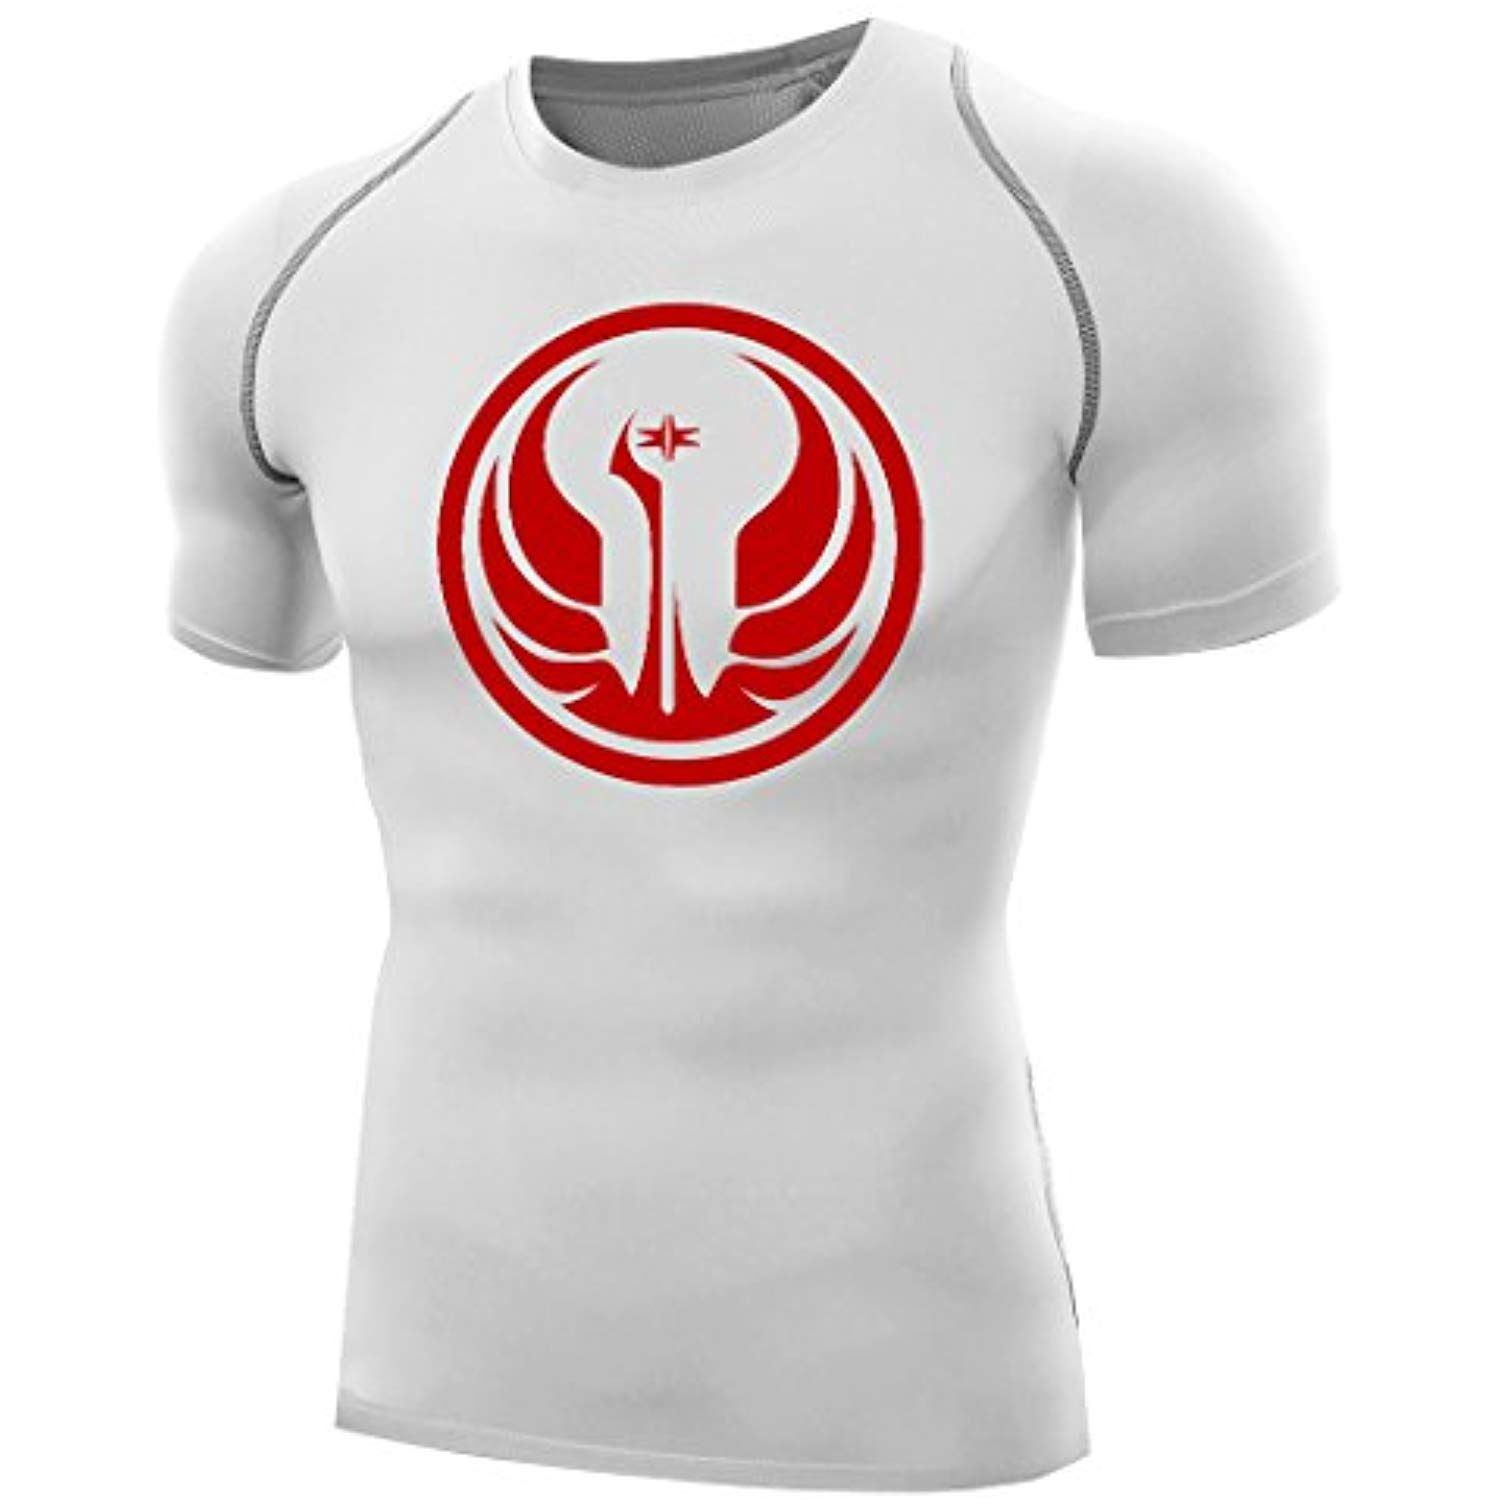 Official Star Wars Mens Baselayer Compression Top Short Sleeve Clothing Active